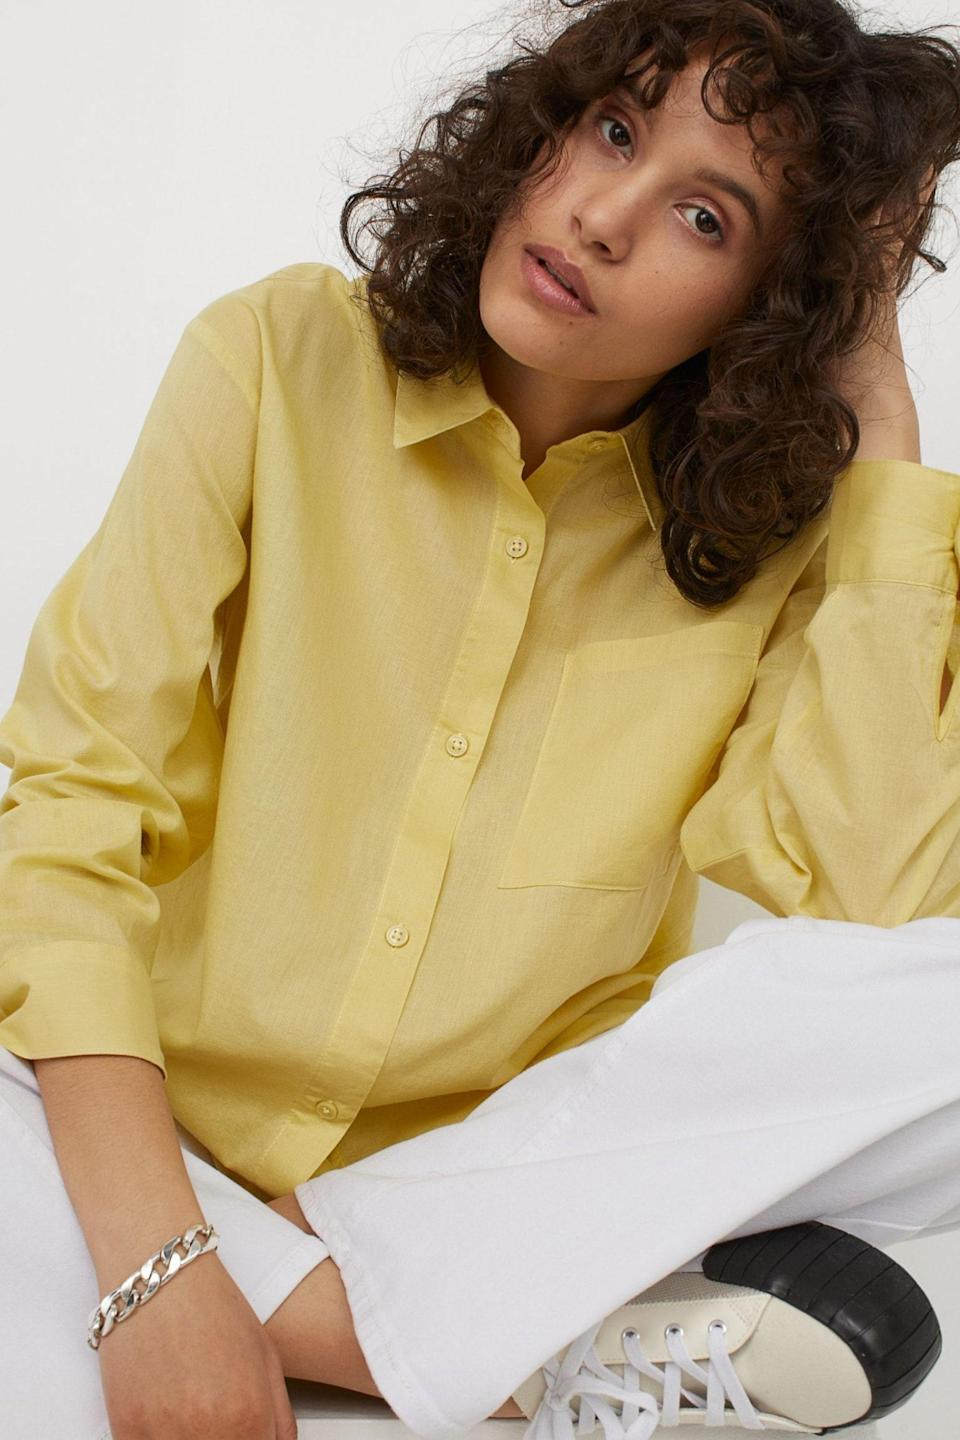 """The price is just right for this limoncello button-down, which you'll no doubt put to good use next summer as a <a href=""""https://www.glamour.com/gallery/best-cover-ups?mbid=synd_yahoo_rss"""" rel=""""nofollow noopener"""" target=""""_blank"""" data-ylk=""""slk:beach cover-up"""" class=""""link rapid-noclick-resp"""">beach cover-up</a>. $18, H&M. <a href=""""https://www2.hm.com/en_us/productpage.0872901017.html"""" rel=""""nofollow noopener"""" target=""""_blank"""" data-ylk=""""slk:Get it now!"""" class=""""link rapid-noclick-resp"""">Get it now!</a>"""